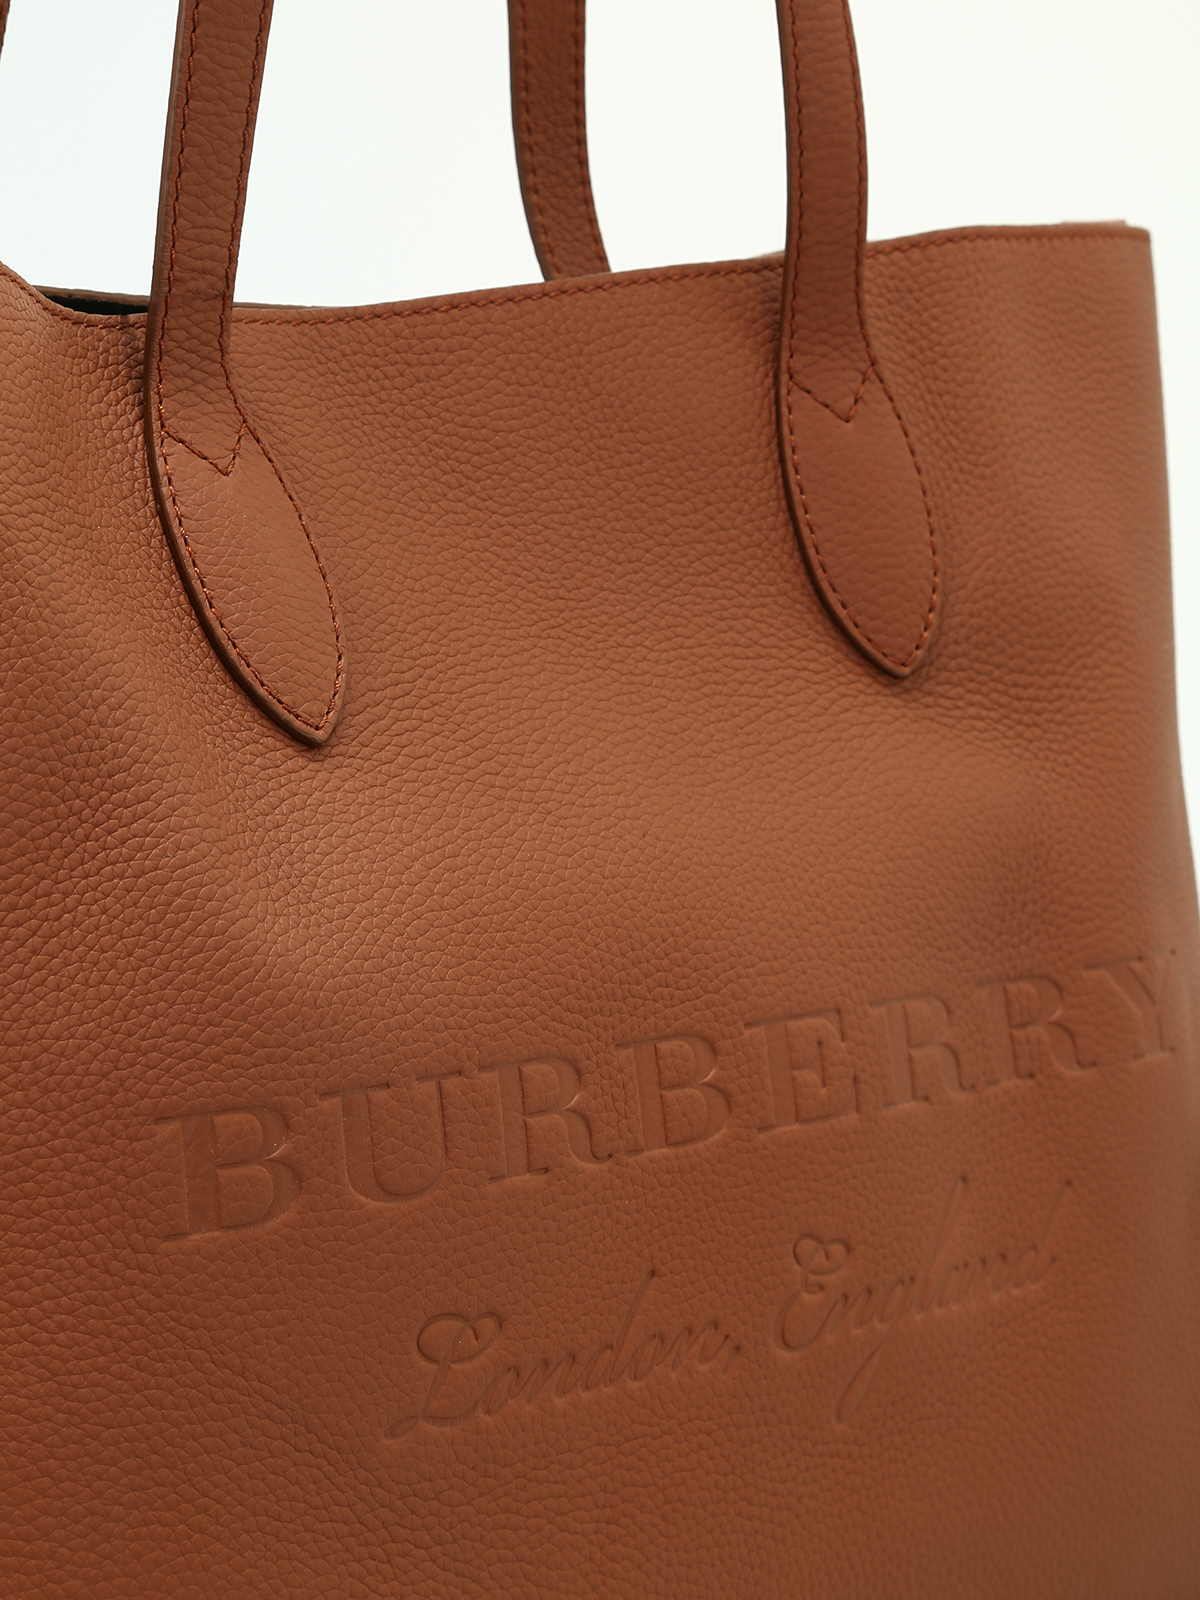 0eb3cca64dda Burberry - Remington brown leather large tote - totes bags - 4060092